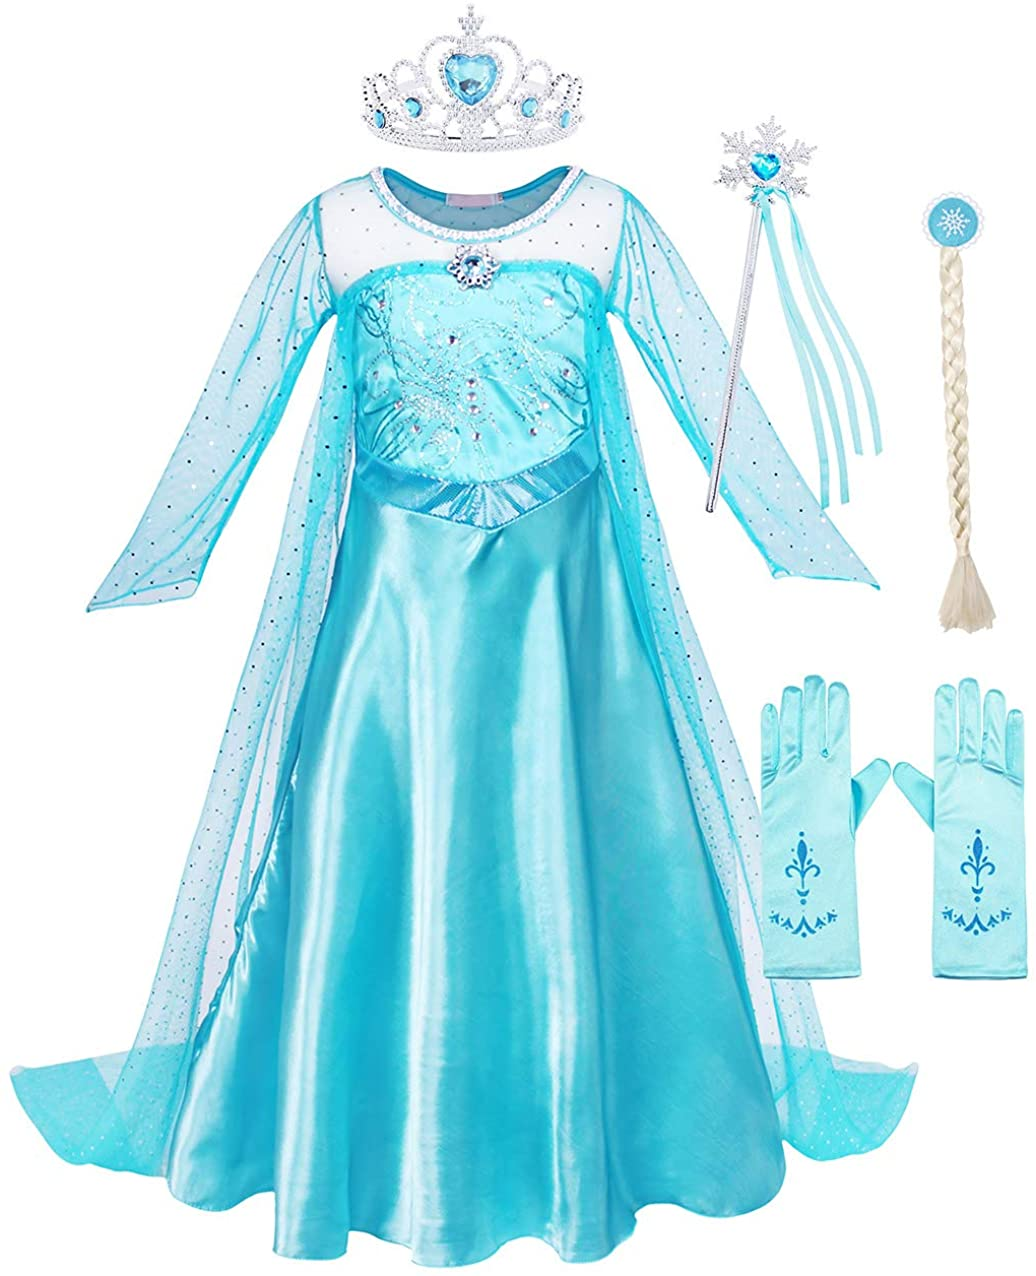 AmzBarley Girls Princess Costume Halloween Party Dress up Role Play Birthday Outfits Long Sleeve Tulle Dress